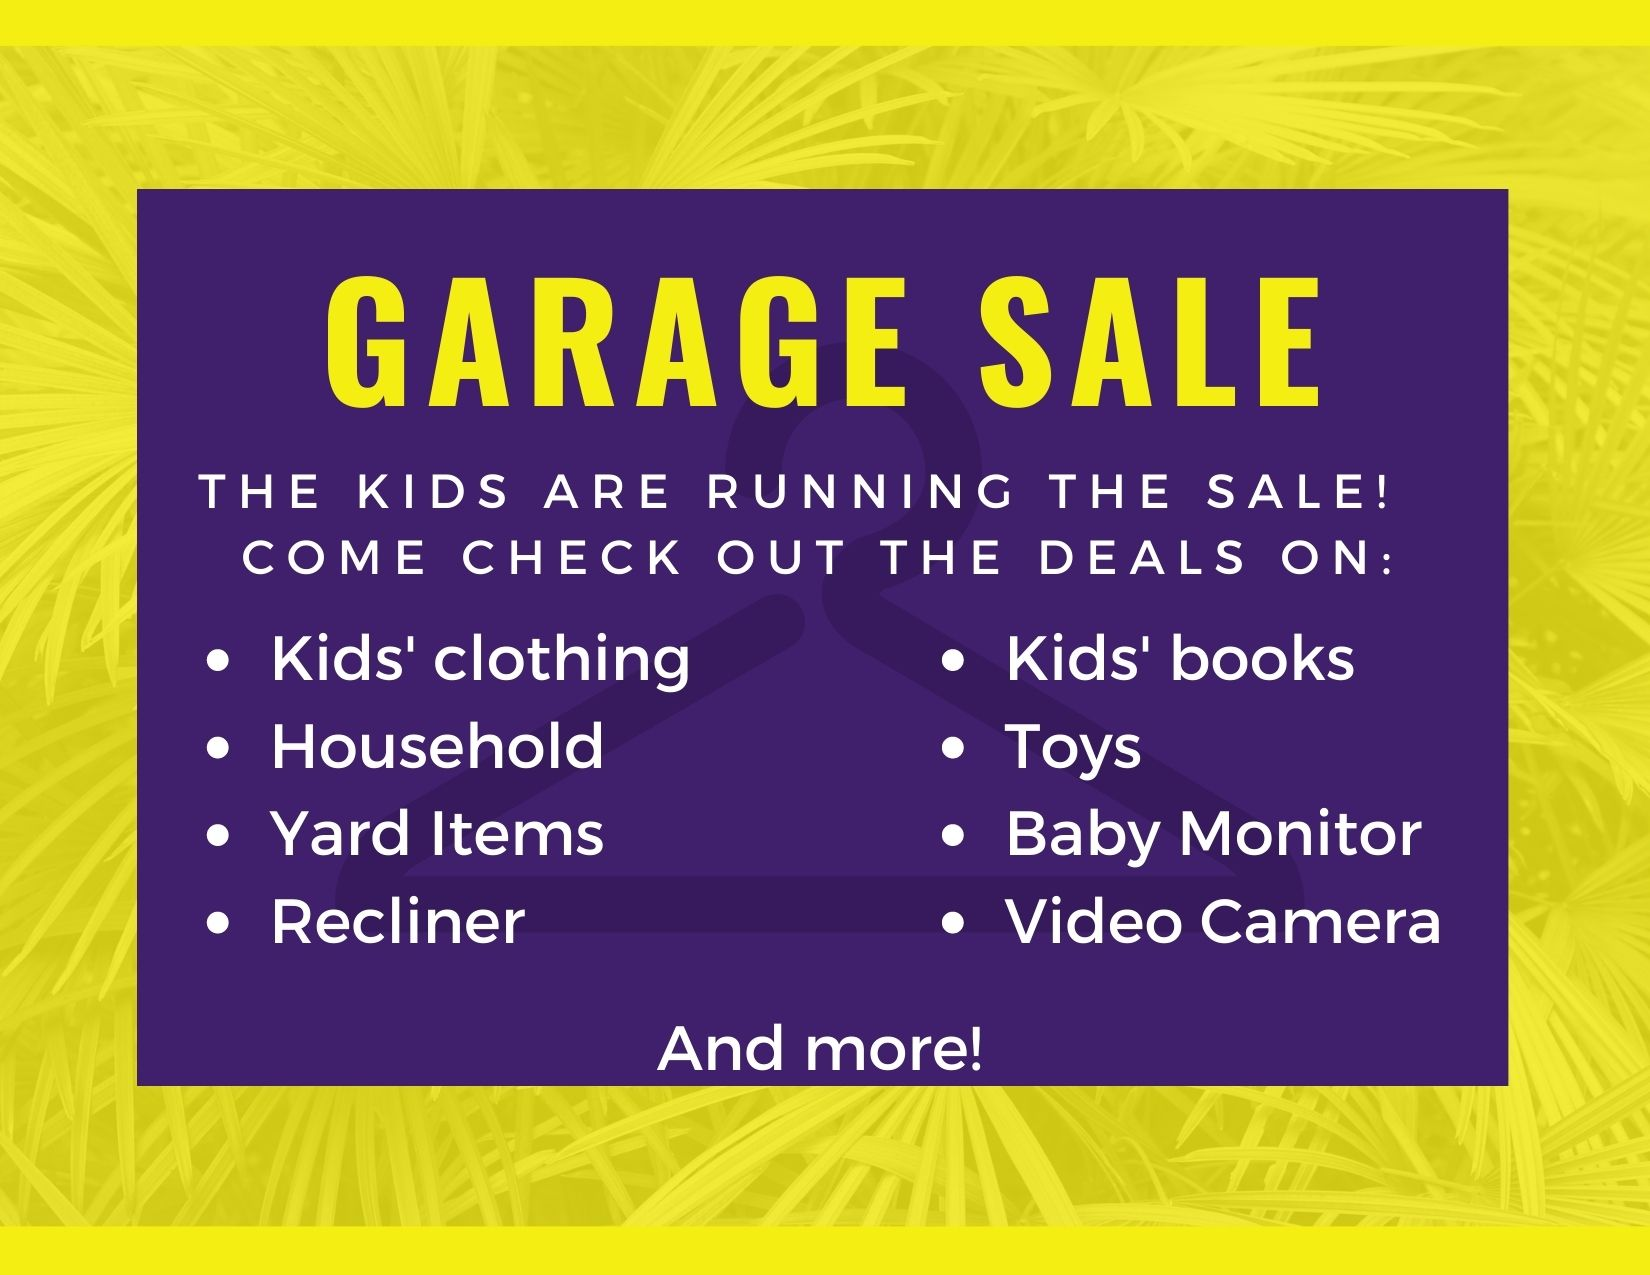 The Kids are running the sale! (1)